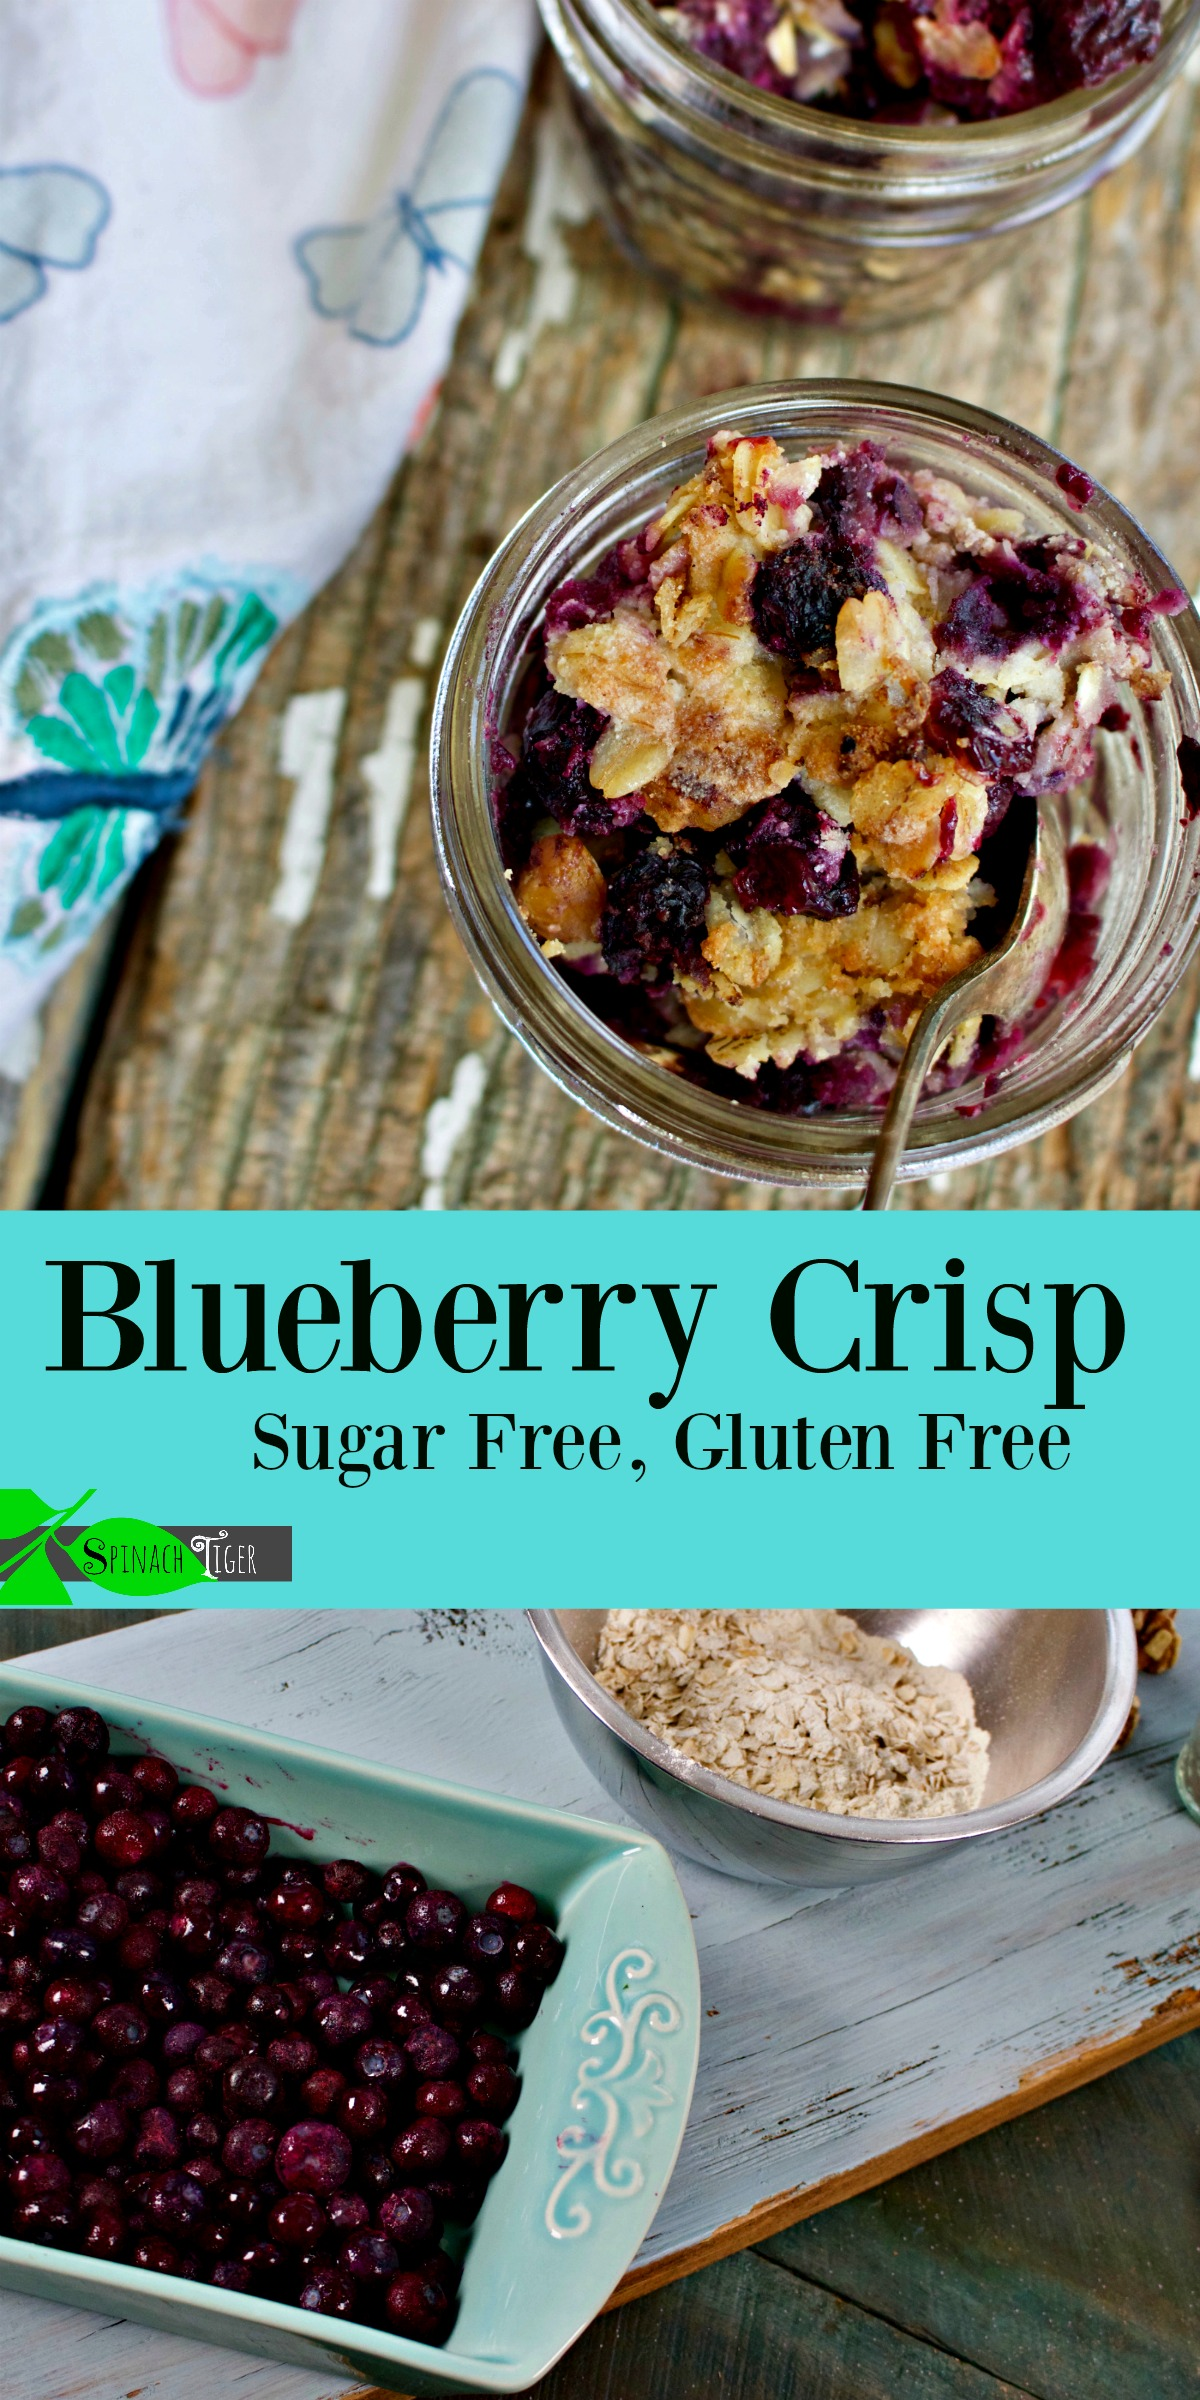 How to Make Easy Blueberry Crisp Recipe, gluten free from Spinach Tiger